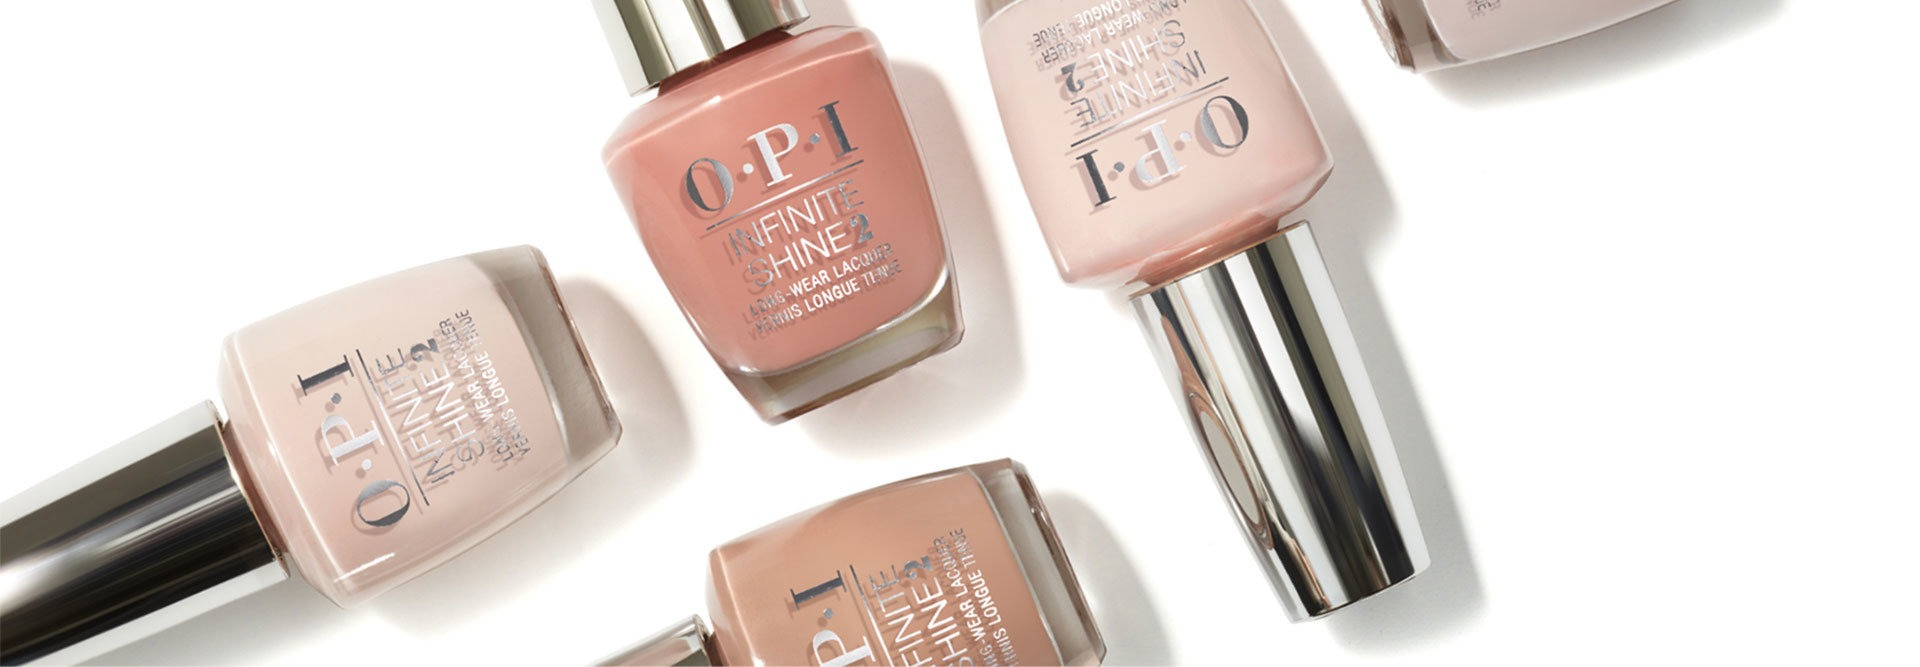 OPI Infinite Shine Nude Nail Polish